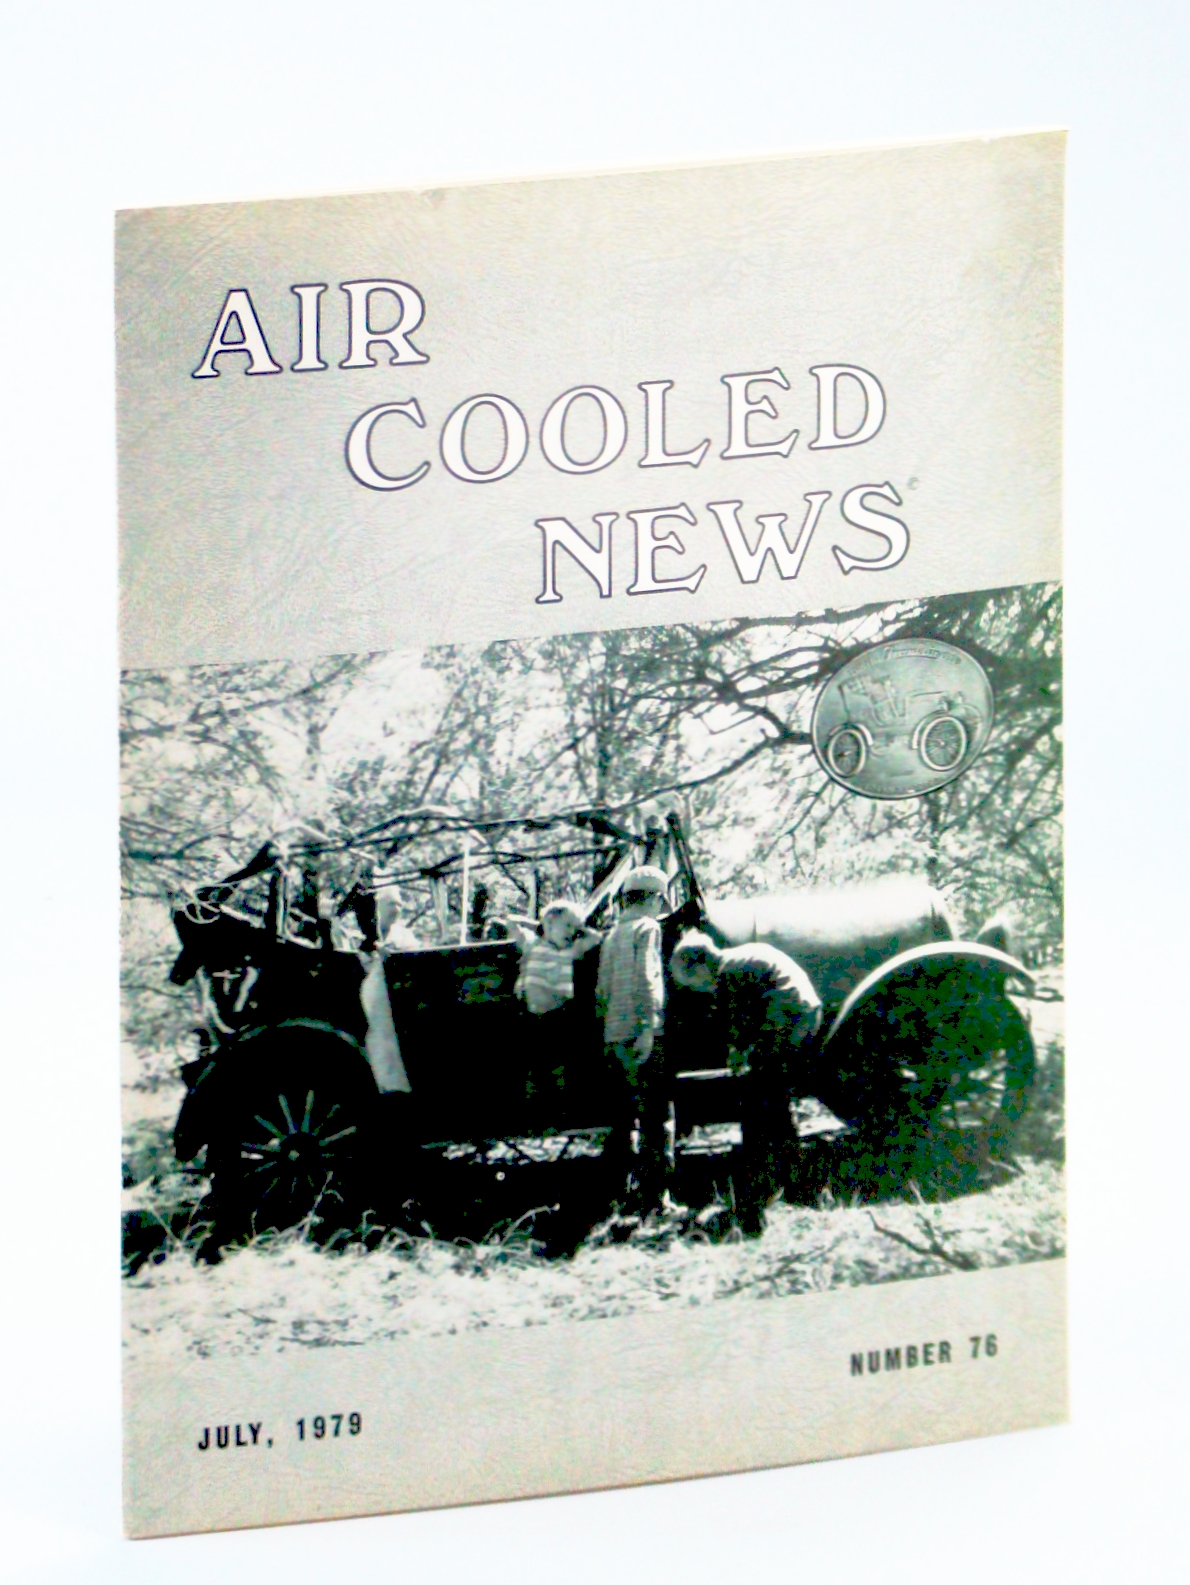 Image for Air Cooled News, Number 76, July 1979, Vol. XXVII, No. 1 - Grandfather's Franklin